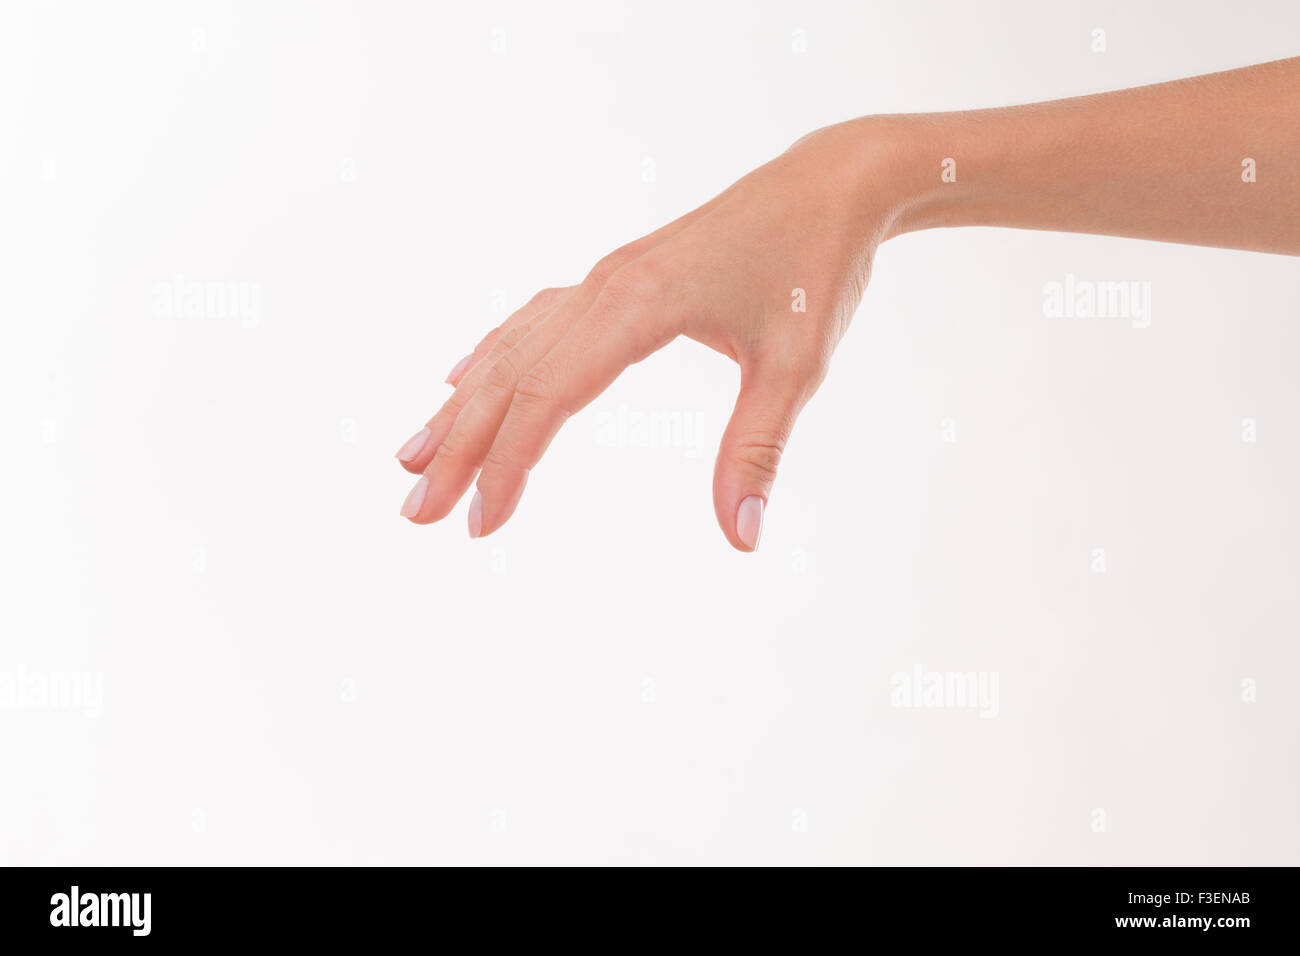 ecfe26519b40d Woman's hand as if holding something Stock Photo: 88219891 - Alamy